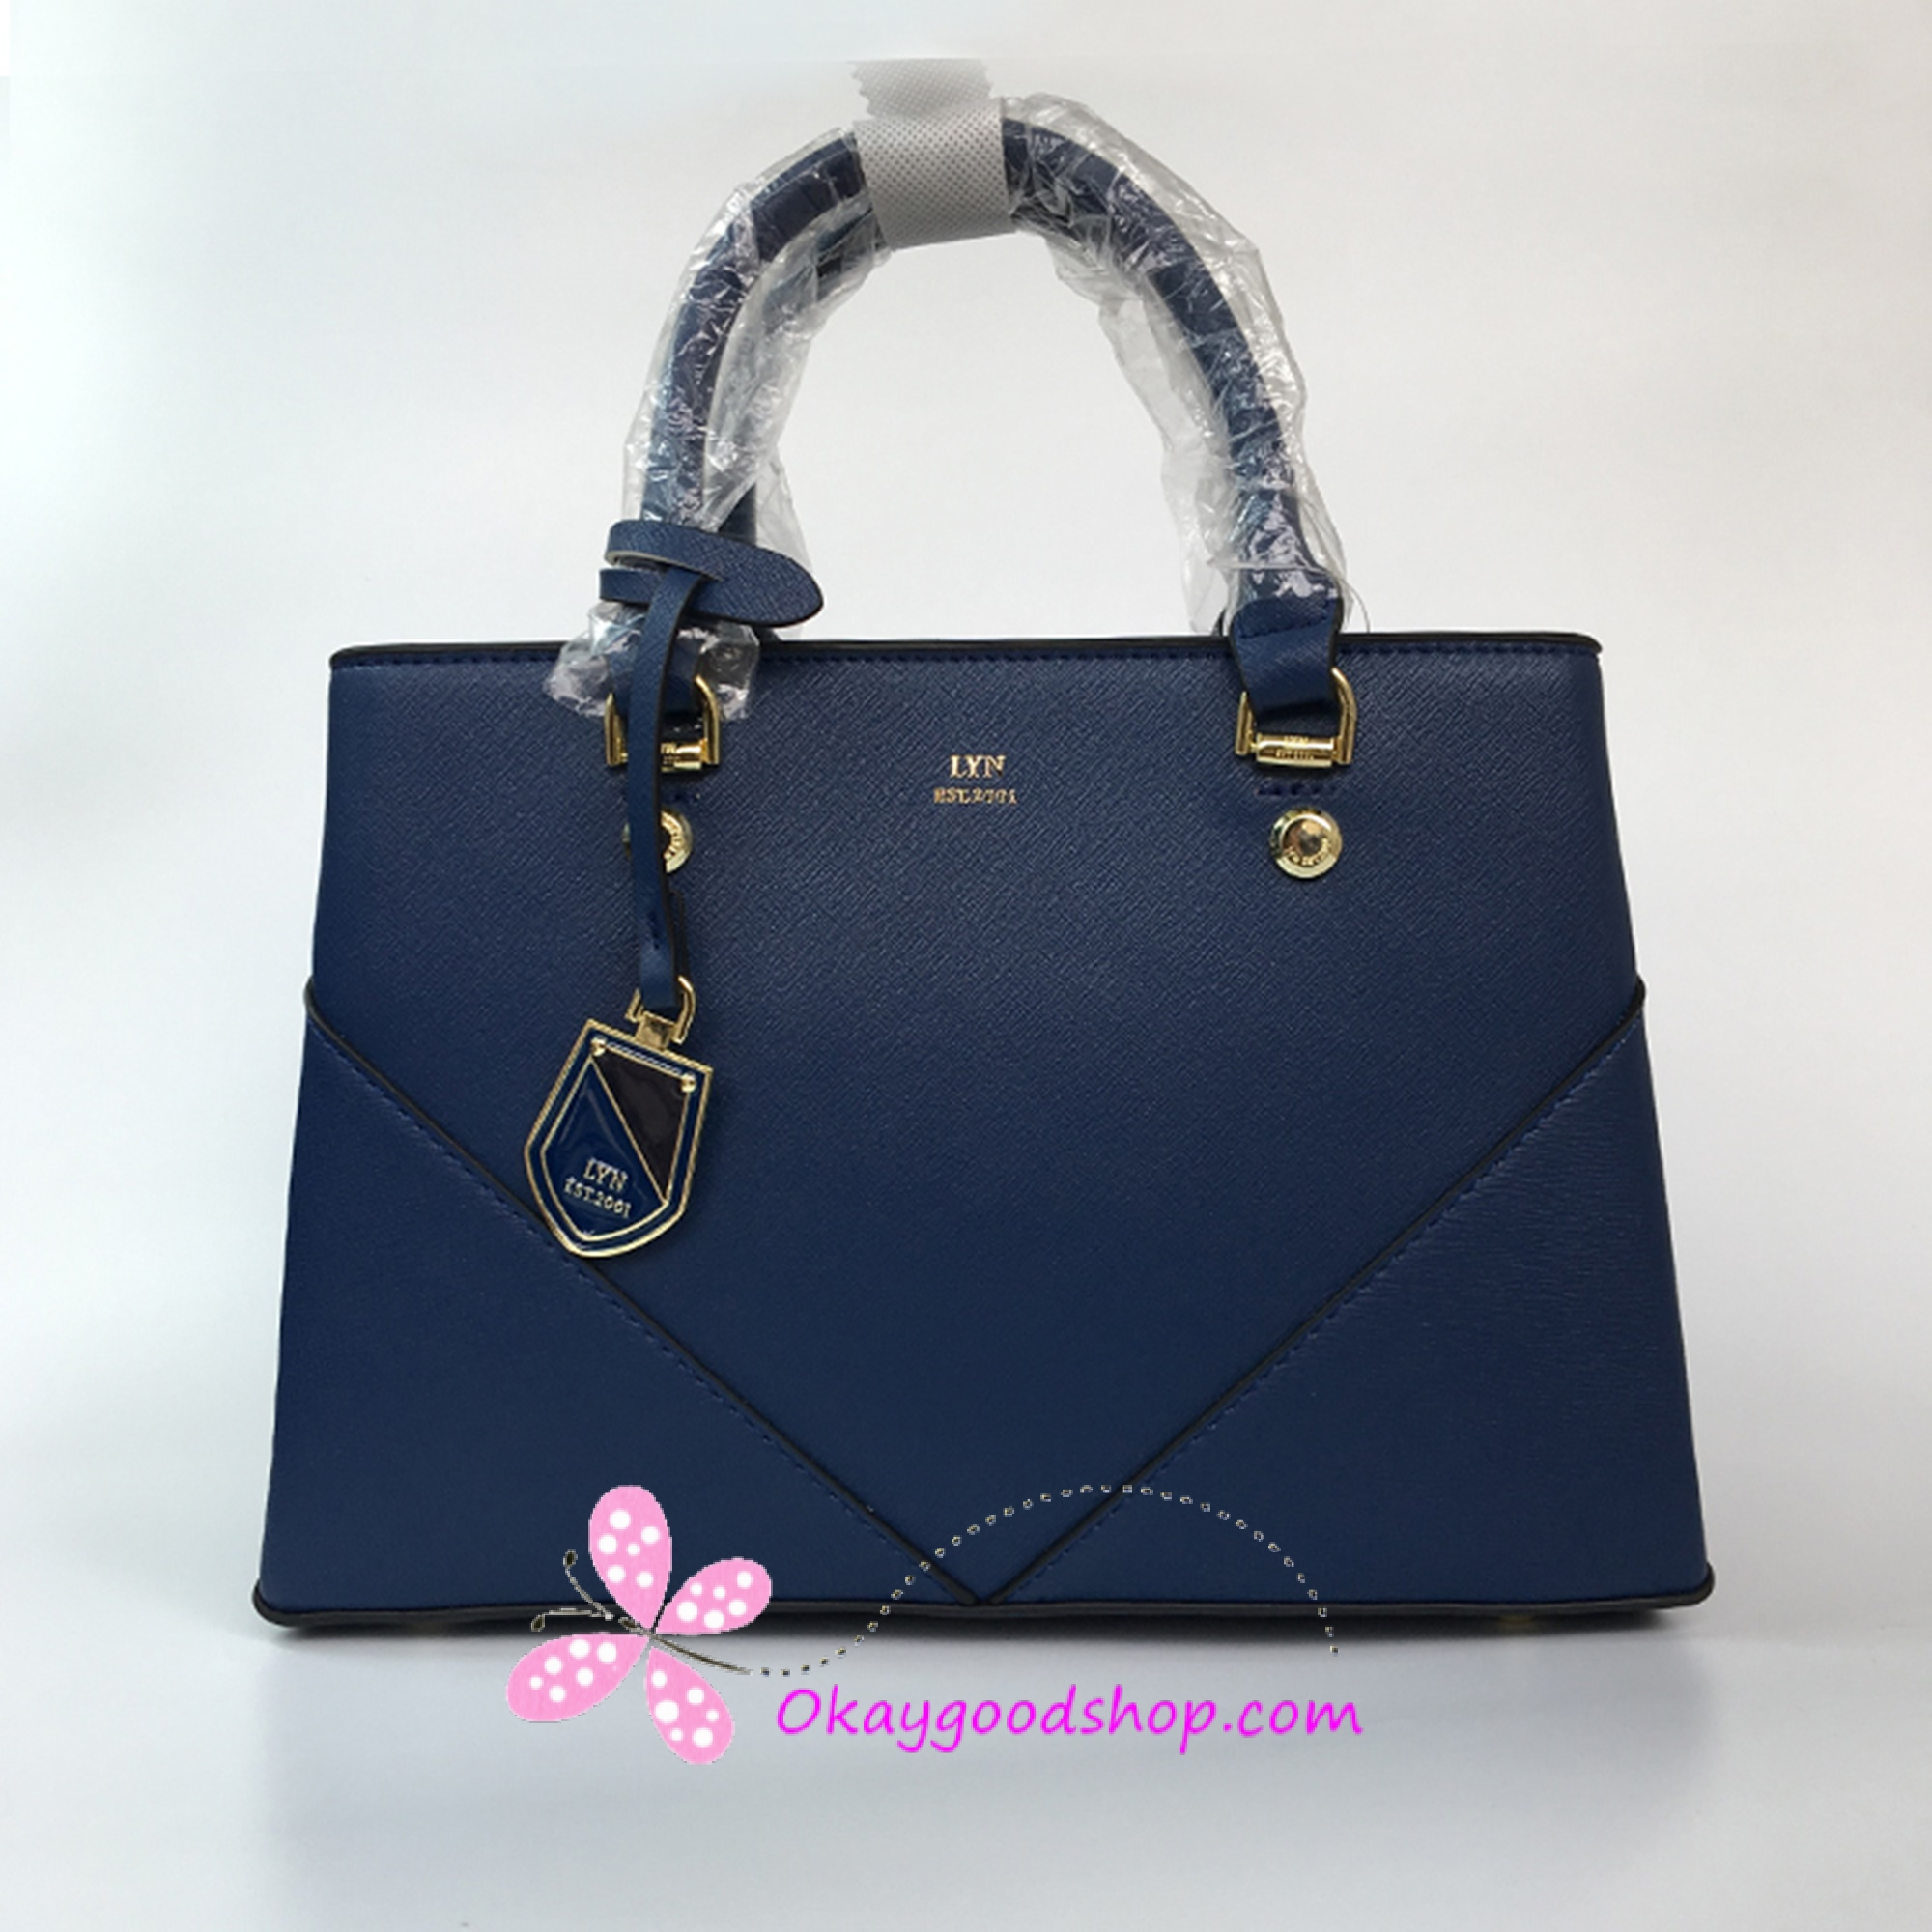 a61397a5be0e LYN Amour M Bag - สีน้ำเงิน